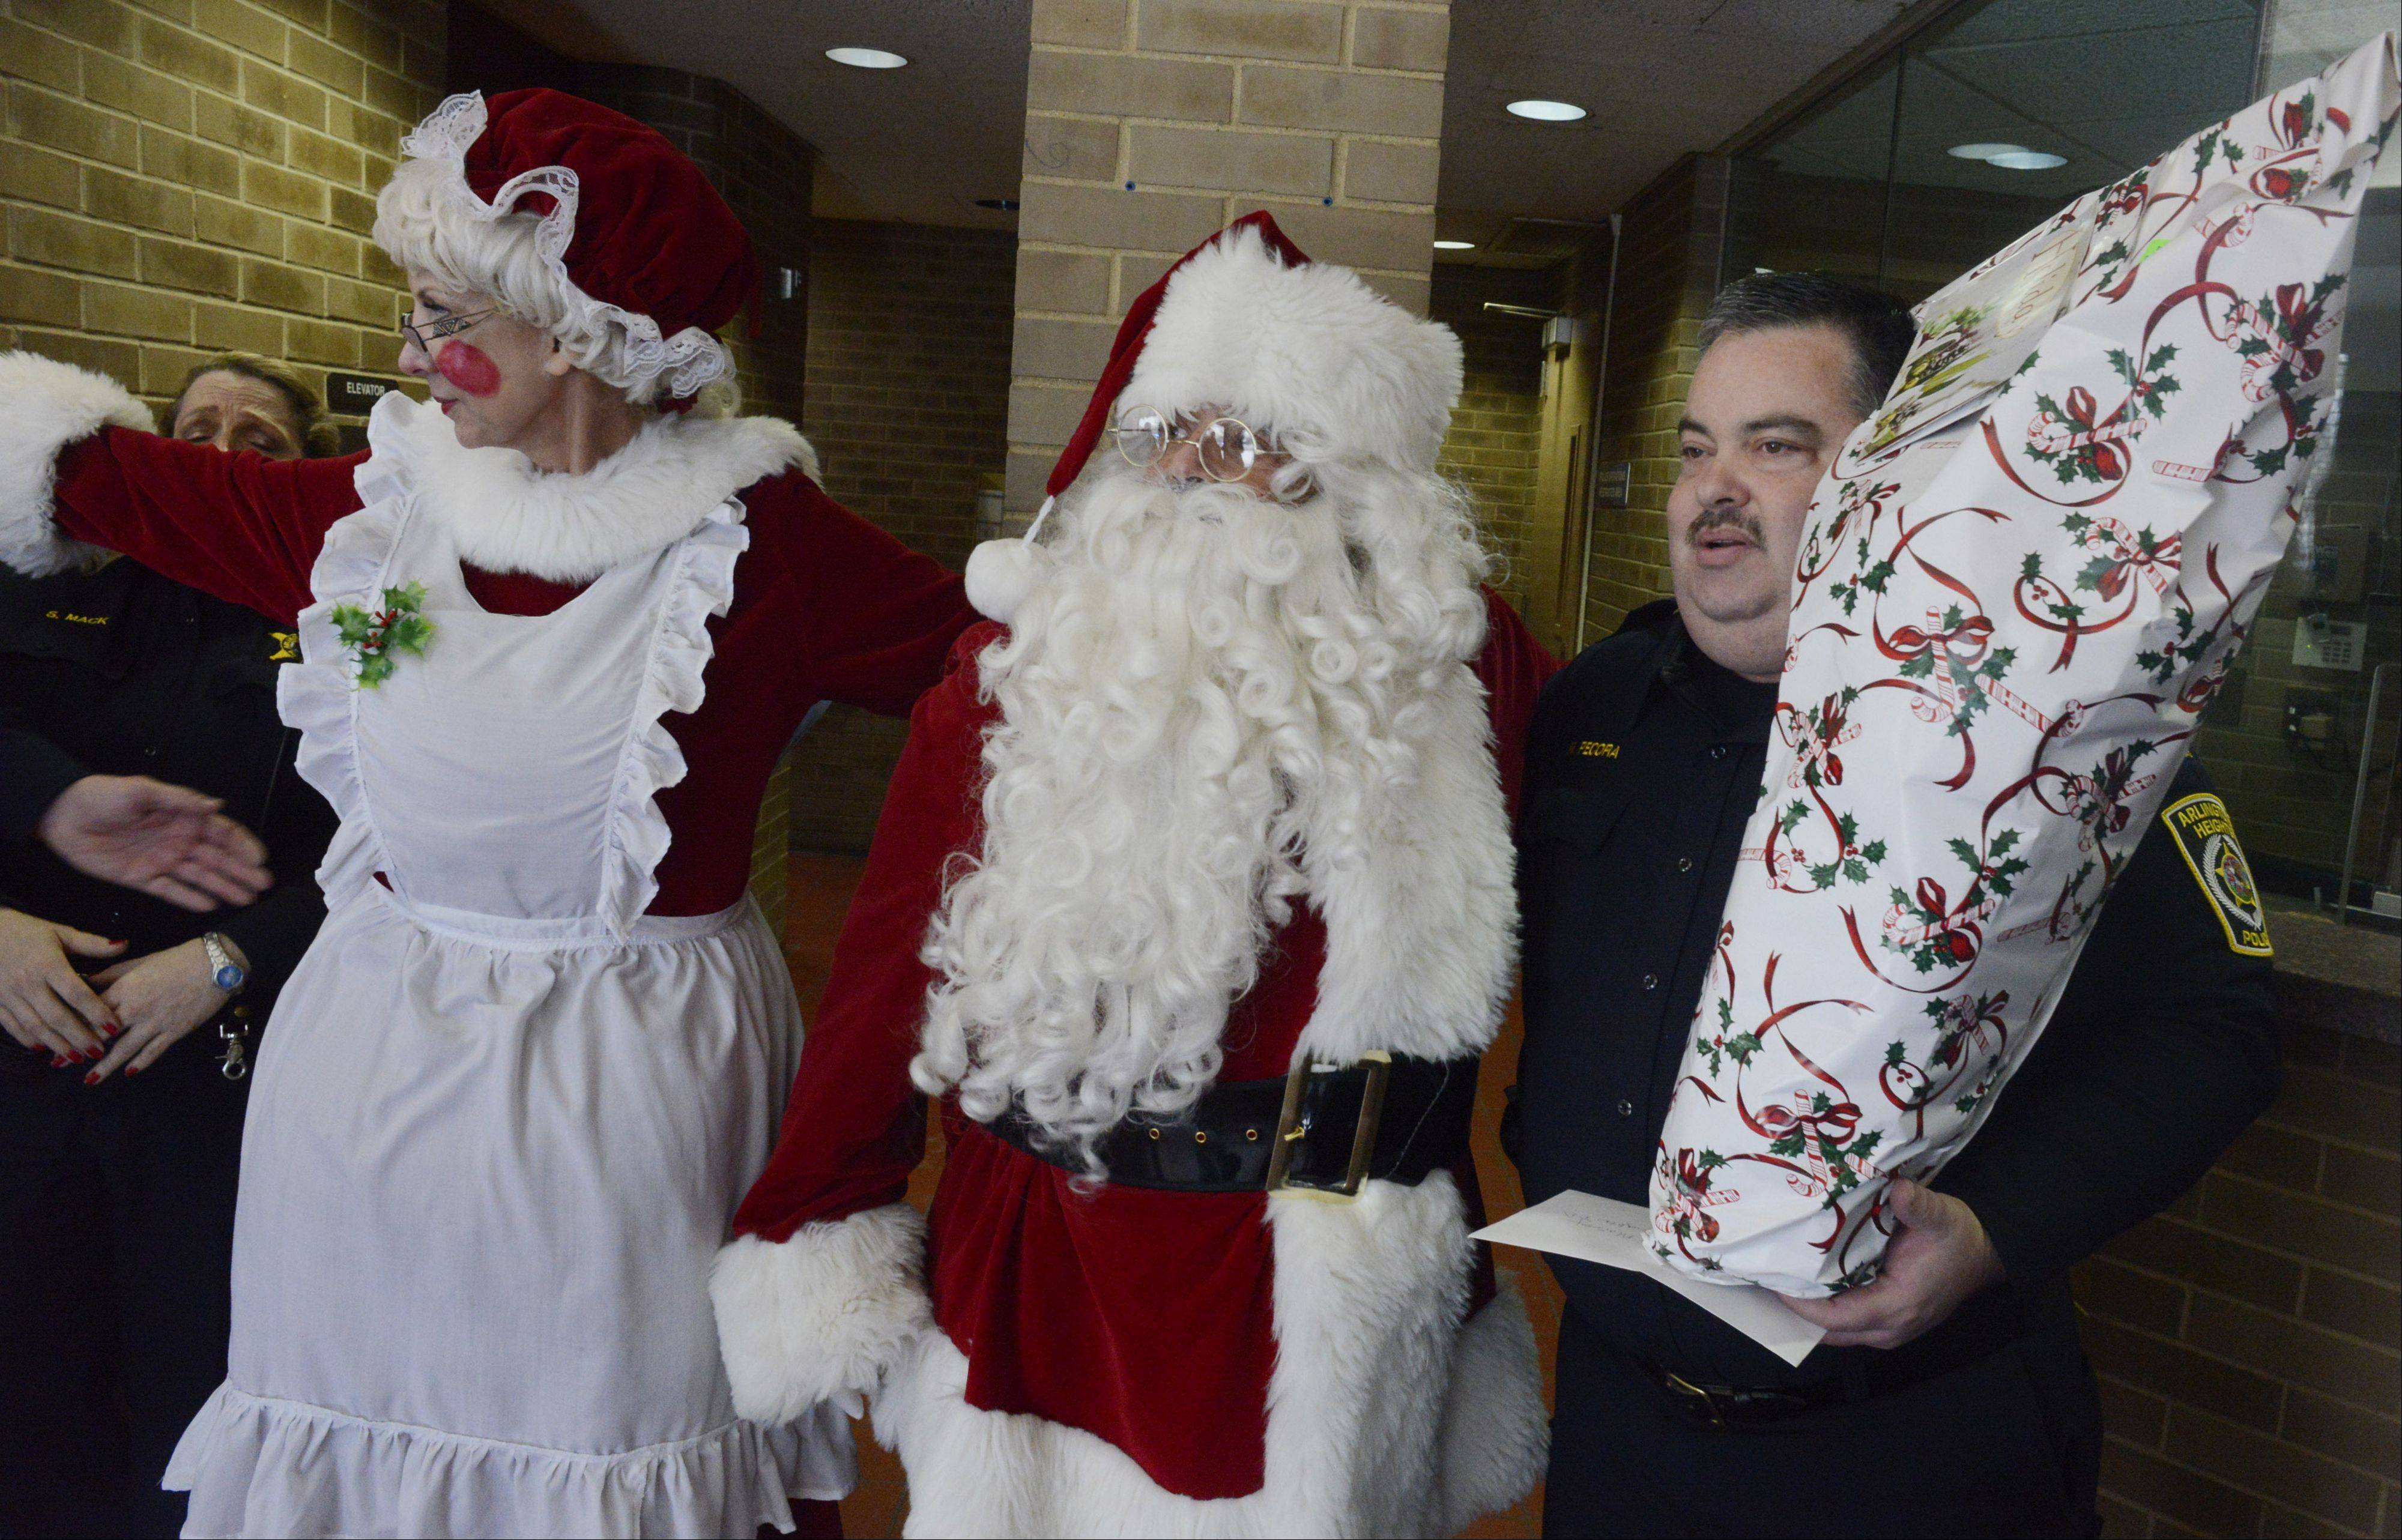 Arlington Heights Capt. Nick Pecora holds gifts for Officer Michael McEvoy, who was shot in the line of duty last week, as the Chicago Police Memorial Foundation's Operation Santa stops at the Arlington Heights Police Department on Saturday.